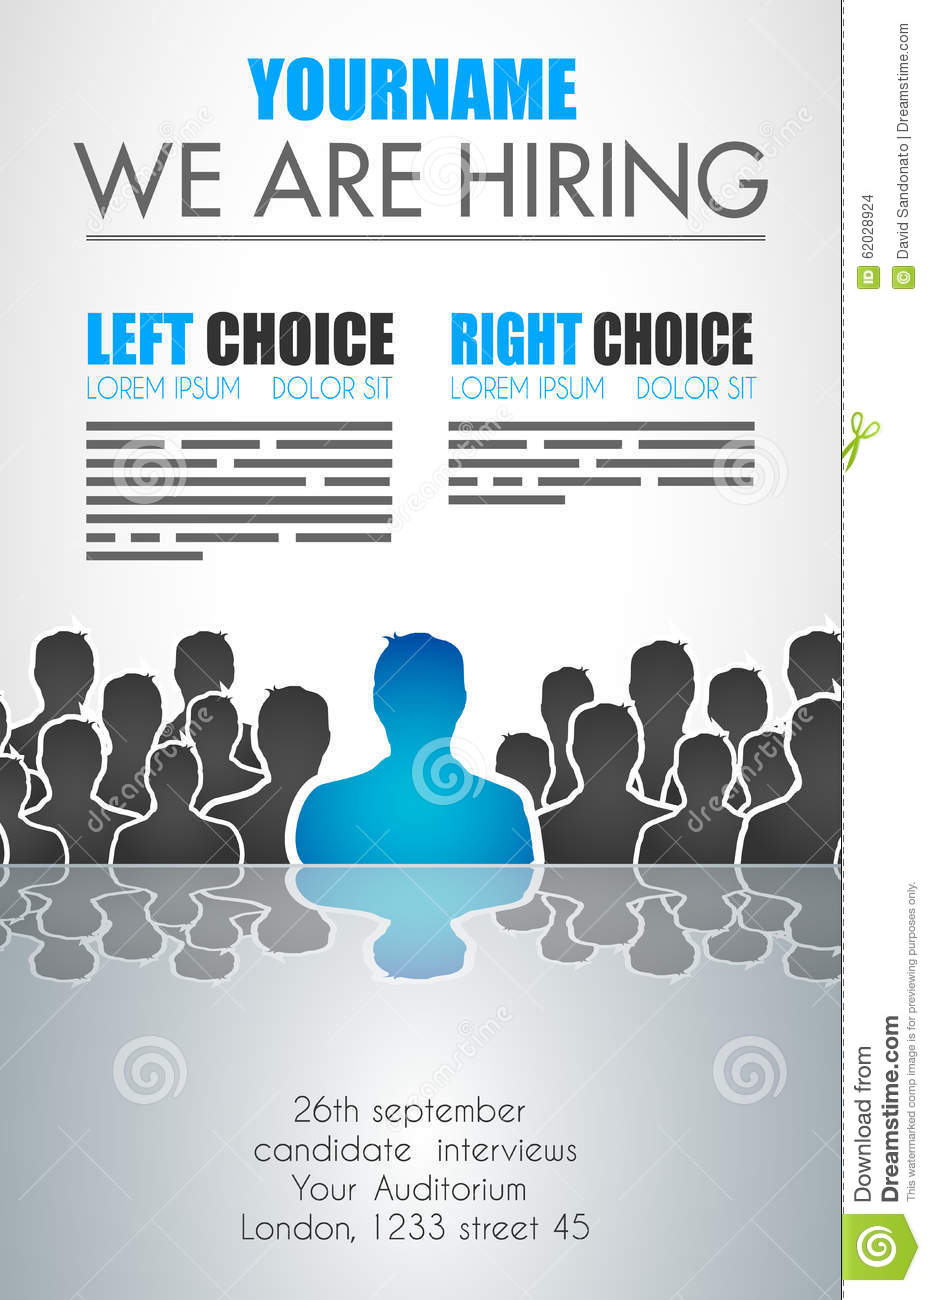 we are hiring background for your hiring posters and flyer